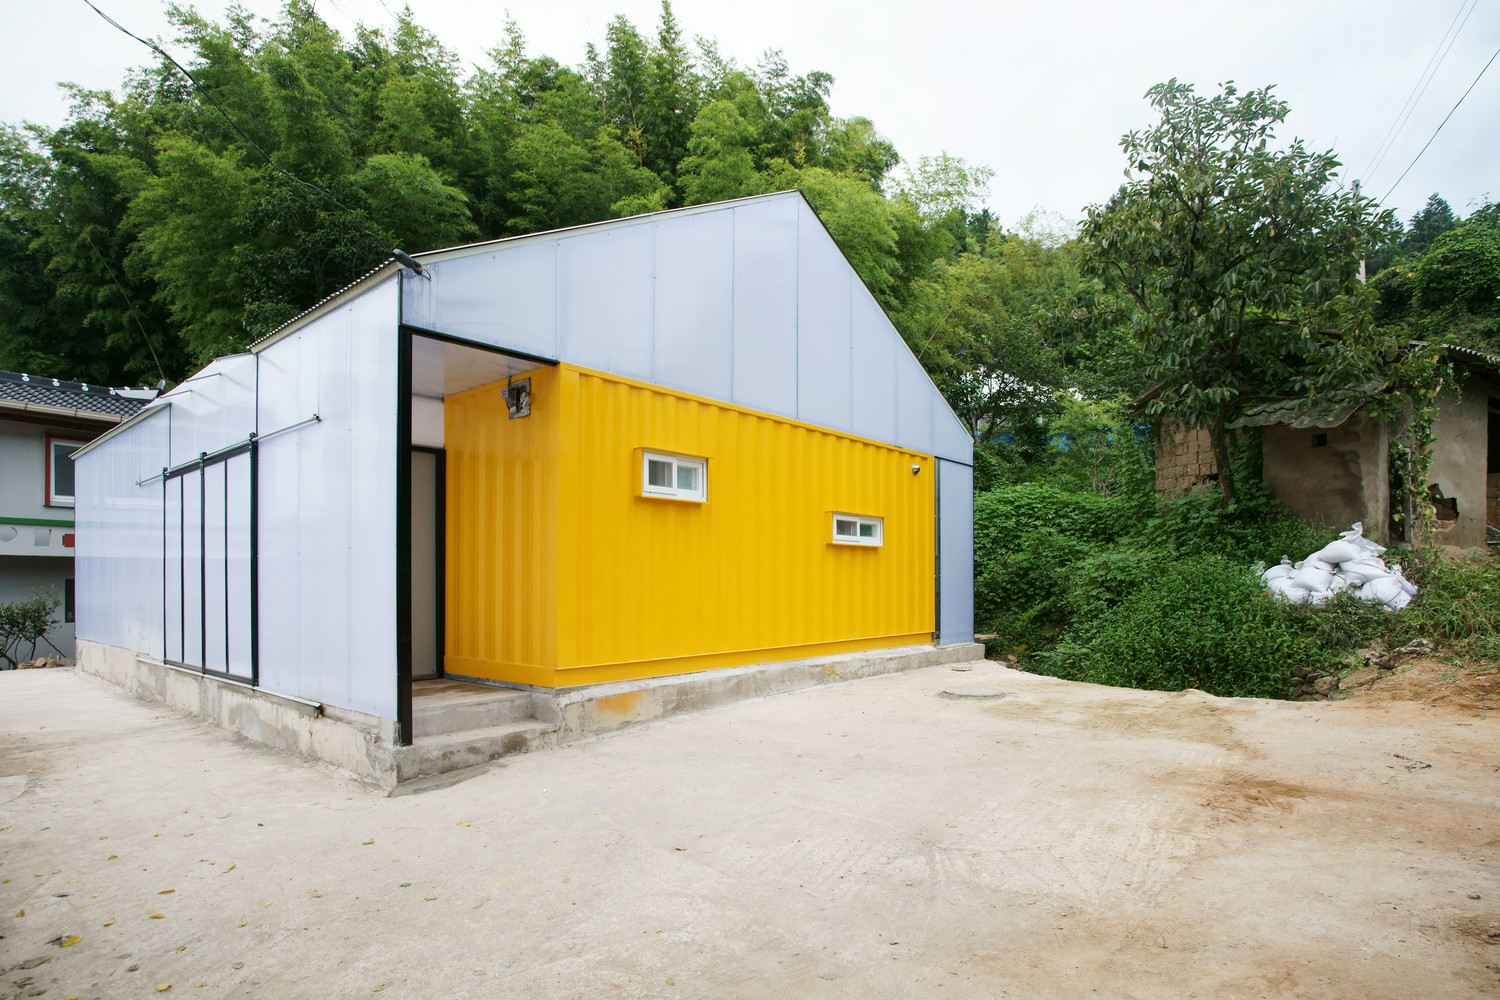 A Low Cost Container House in South Korea by JYA-RCHICTECTS which features a simple gable roof